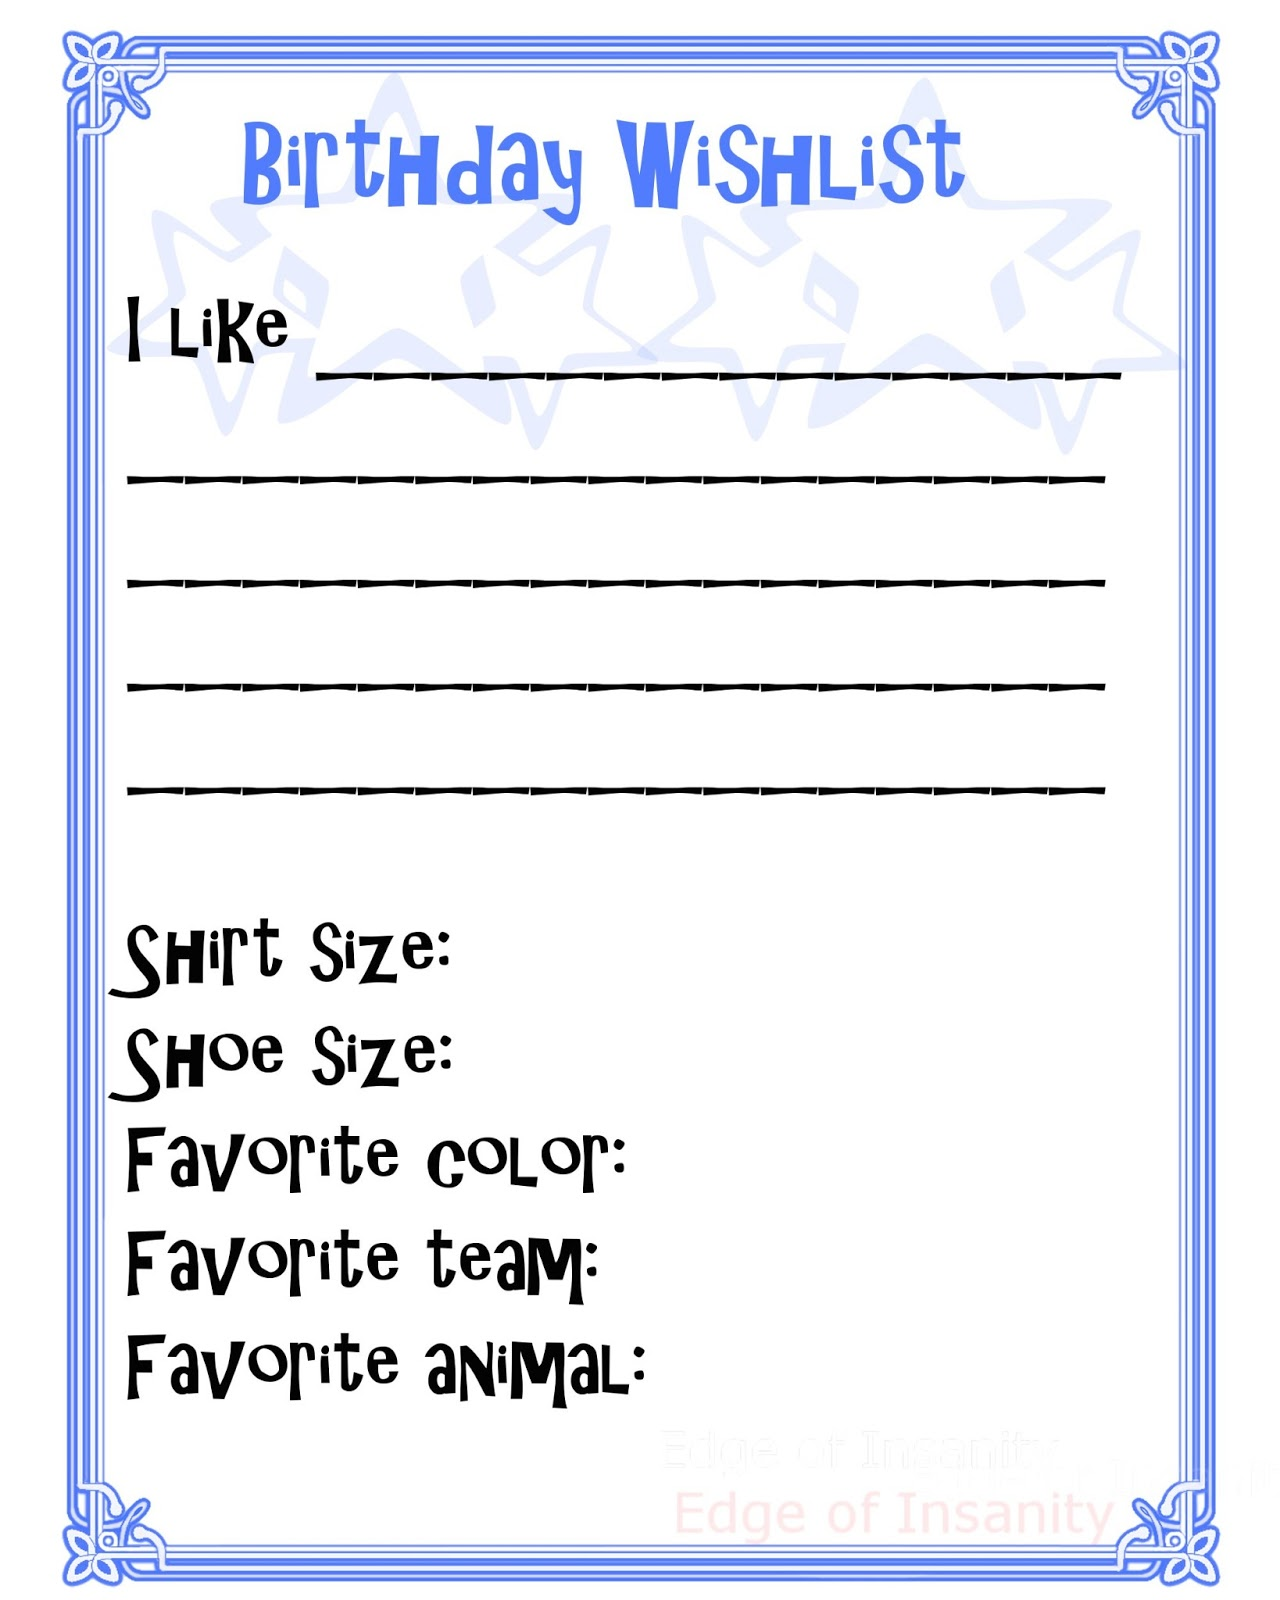 Edge Of Insanity Free Birthday Wishlist Printable